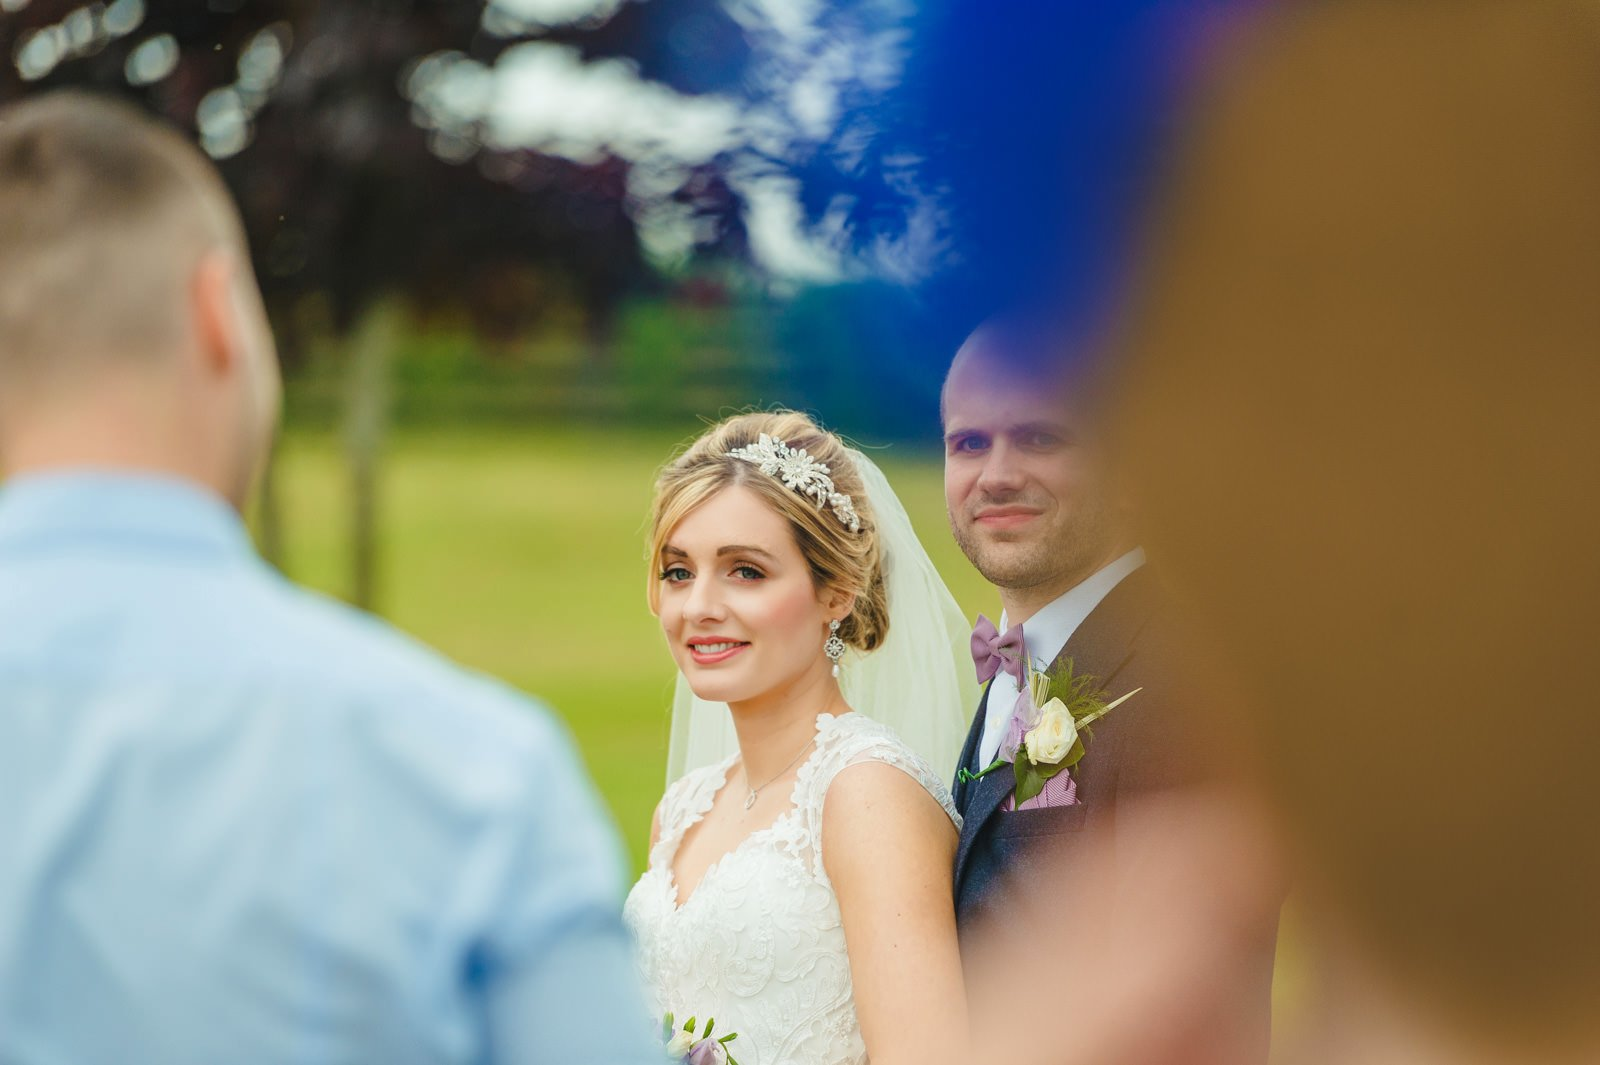 millers of netley wedding 75 - Millers Of Netley wedding, Dorrington, Shrewsbury | Emma + Ben